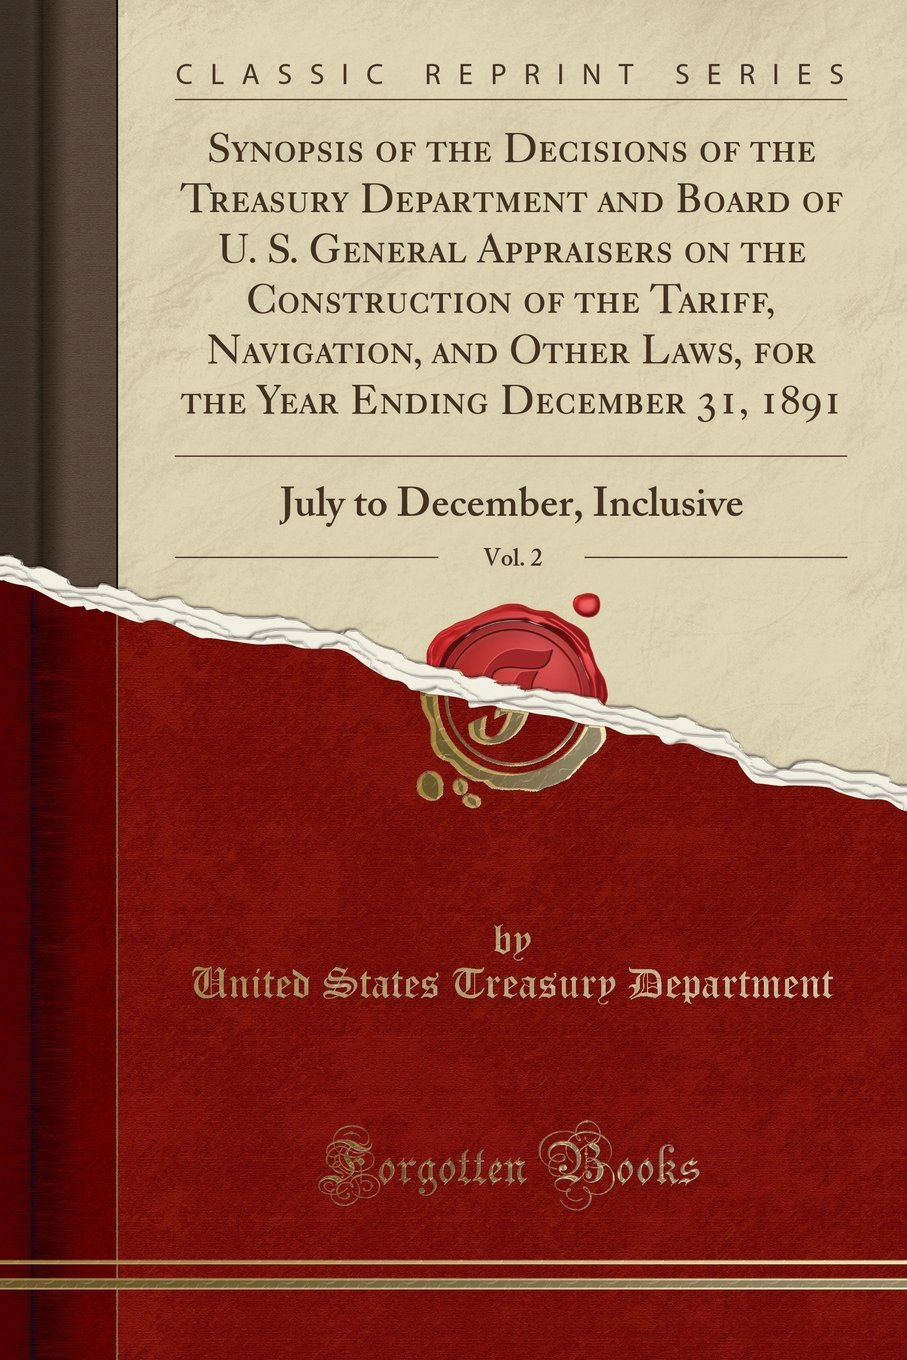 Download Synopsis of the Decisions of the Treasury Department and Board of U. S. General Appraisers on the Construction of the Tariff, Navigation, and Other ... July to December, Inclusive (Classic Reprint) ebook